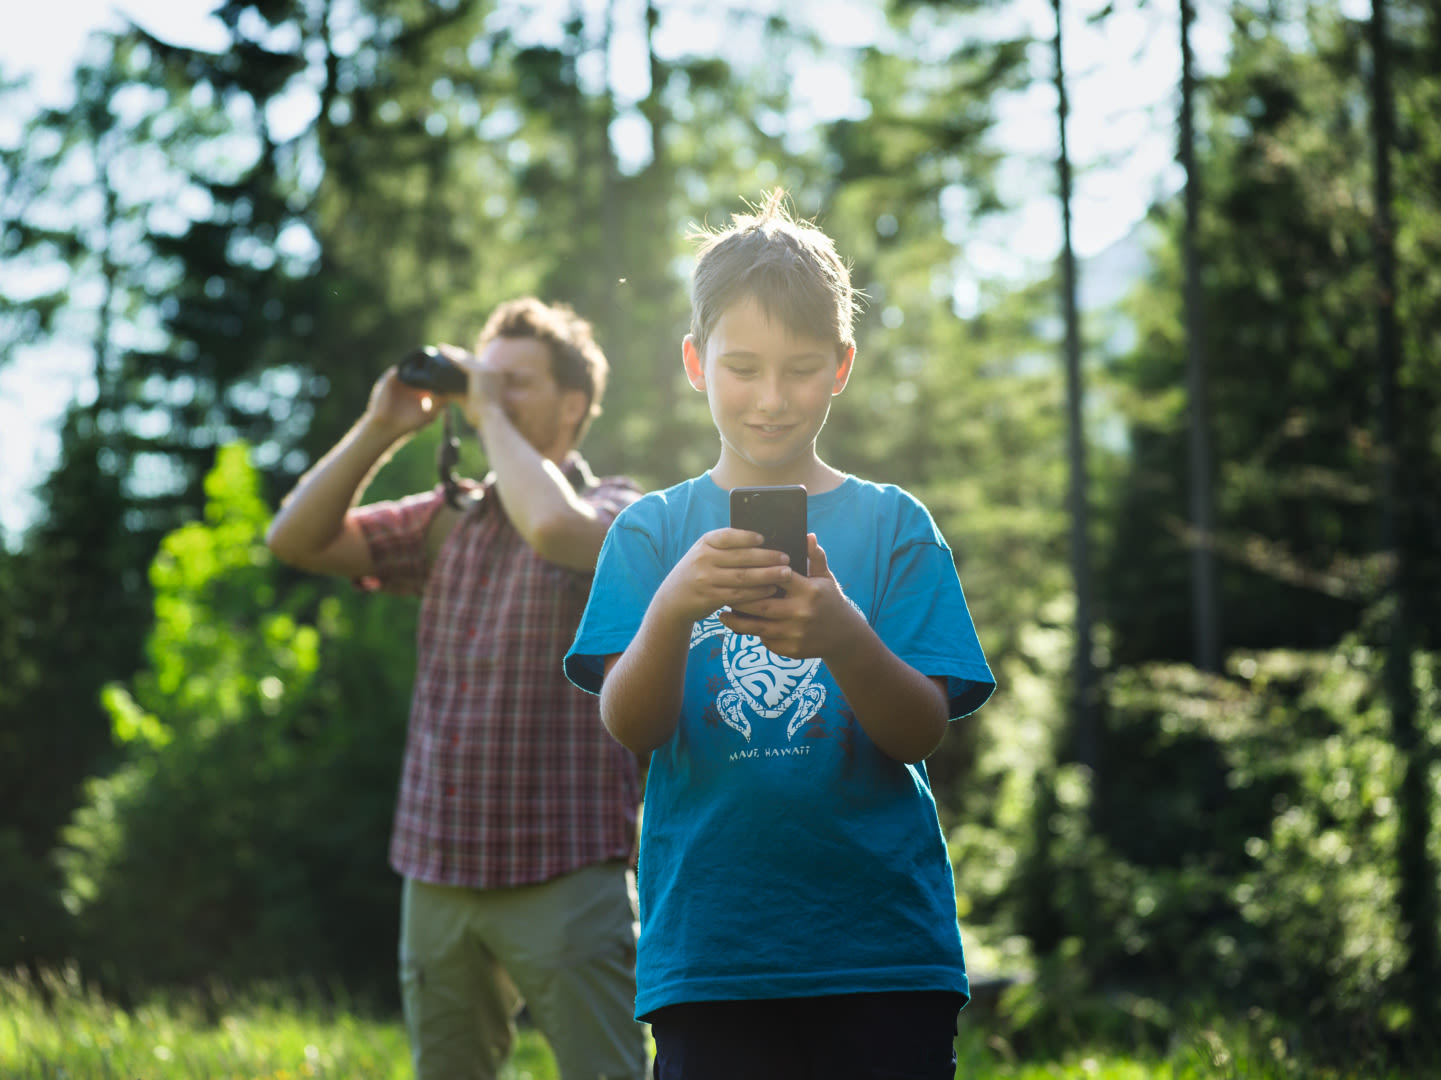 The fun of exploration – how the SWAROVSKI OPTIK dG turns everyone into a wildlife expert - This smart device lets you take photos or videos and helps you to identify the wildlife you spot. A direct learning experience and entertaining treasure hunt.